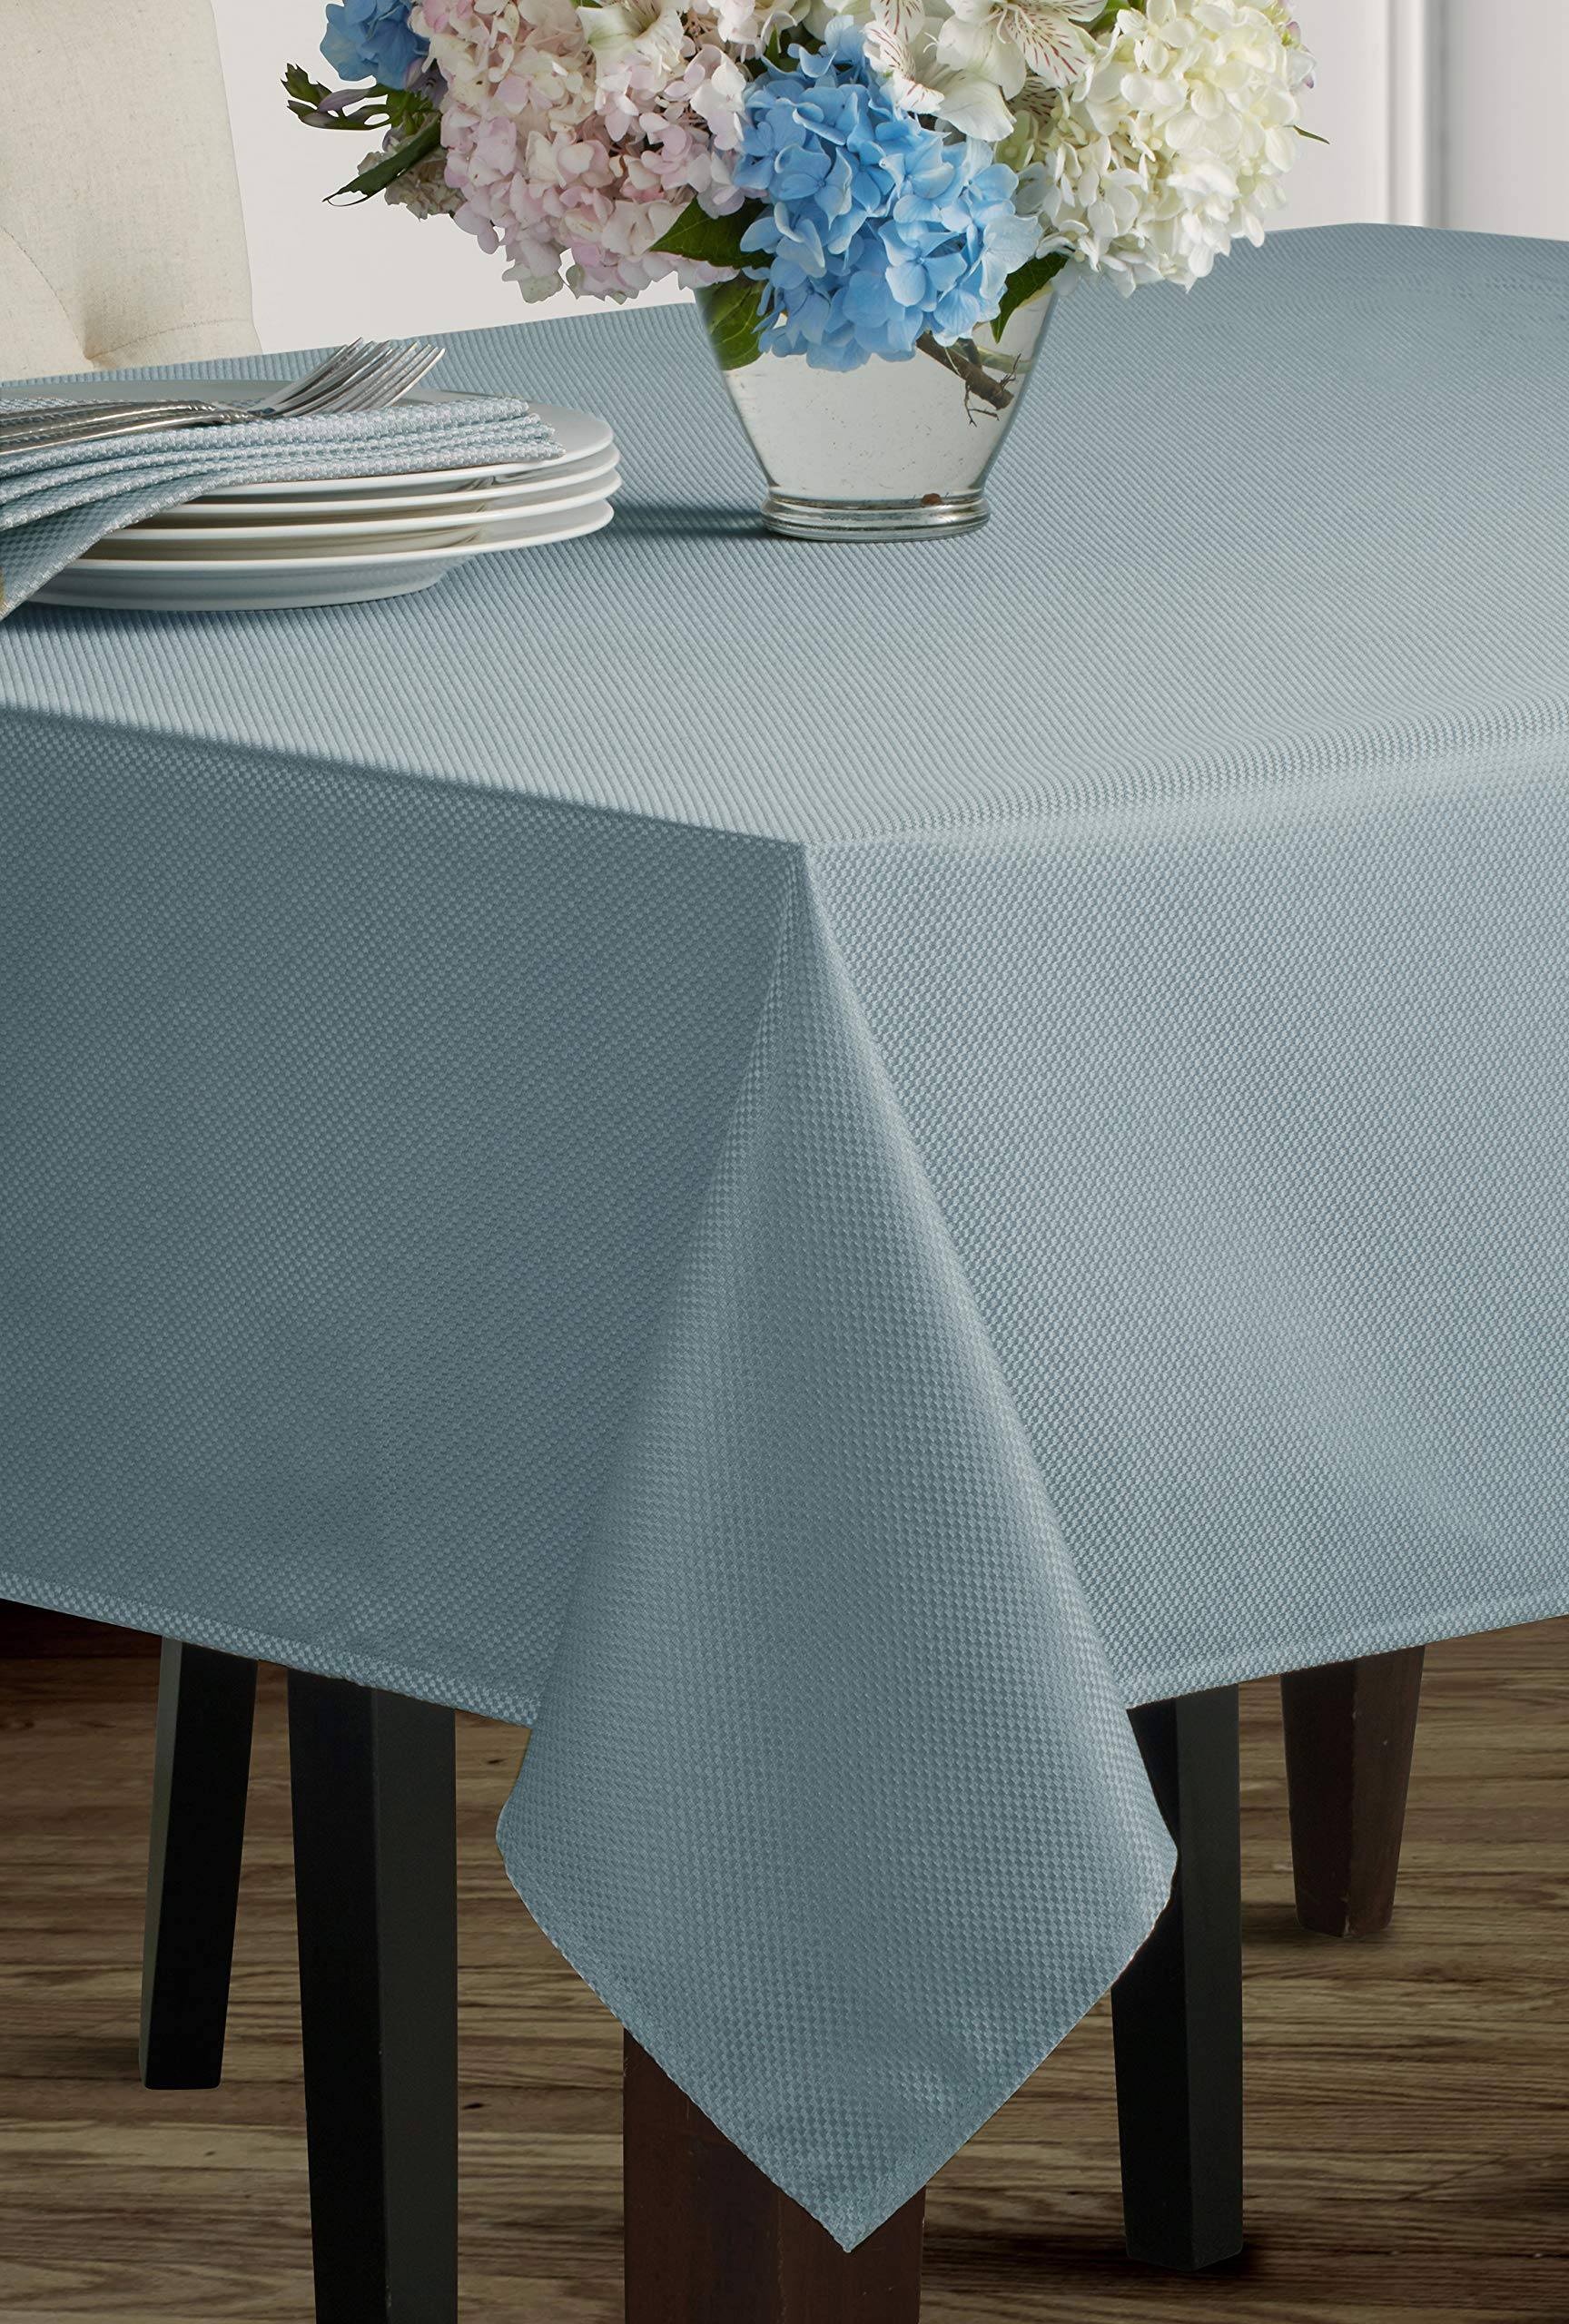 "Benson Mills Beauvalle Extra Wide Spillproof Tablecloth (68"" X 84"" Rectangular, Wedgewood Blue) - Treated polyester fabric tablecloth, extra wide. All liquids, even wine, bead up can be quickly wiped clean with a sponge or napkin Contemporary pattern Tablecloth, available in additional colors and sizes - tablecloths, kitchen-dining-room-table-linens, kitchen-dining-room - 91J76dQqTaL -"